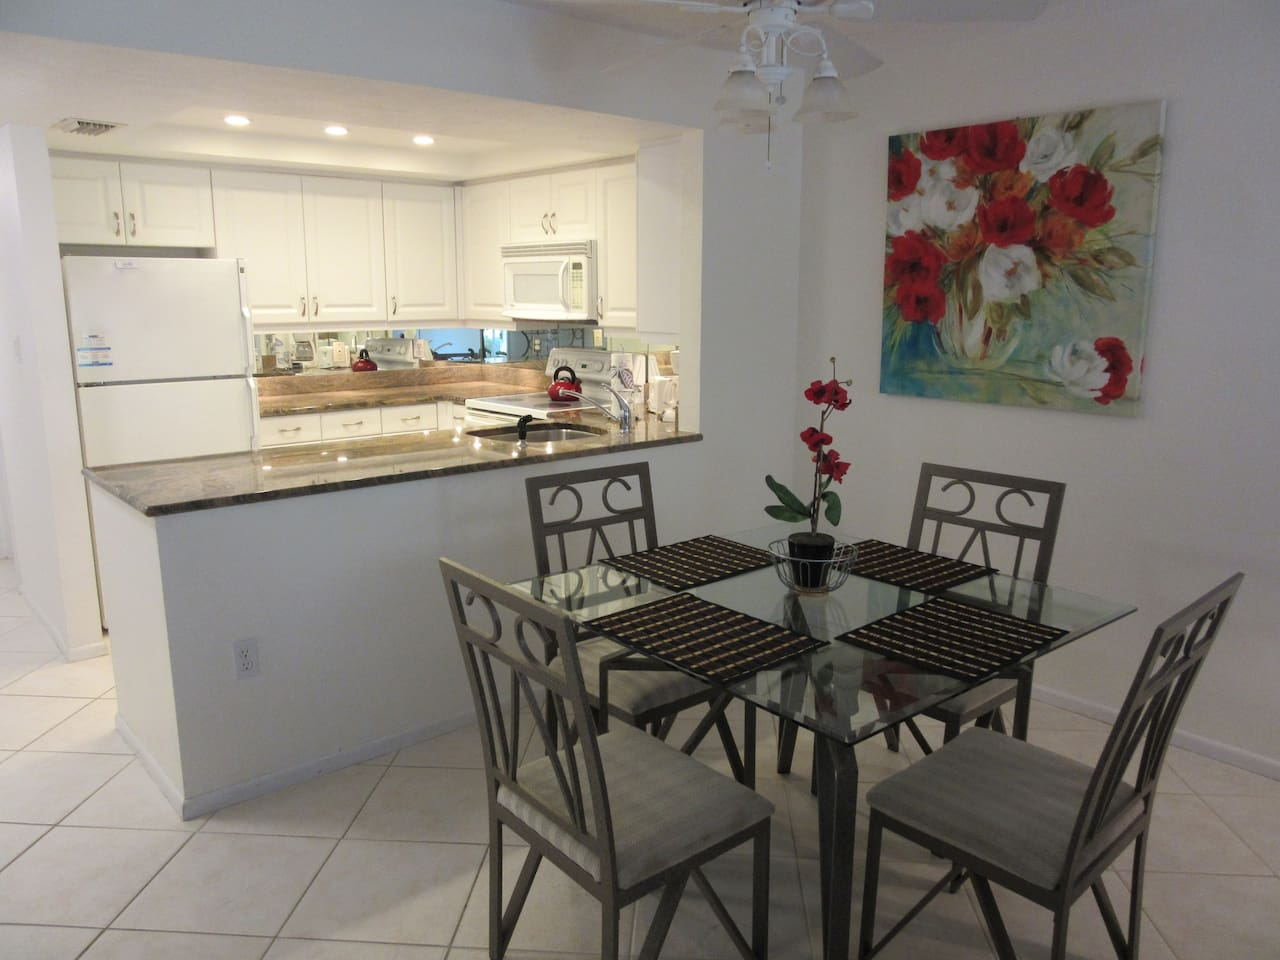 Crib for sale in palm bay - Siesta Key Serenity At The Palm Bay Condominiums For Rent In Siesta Key Florida United States